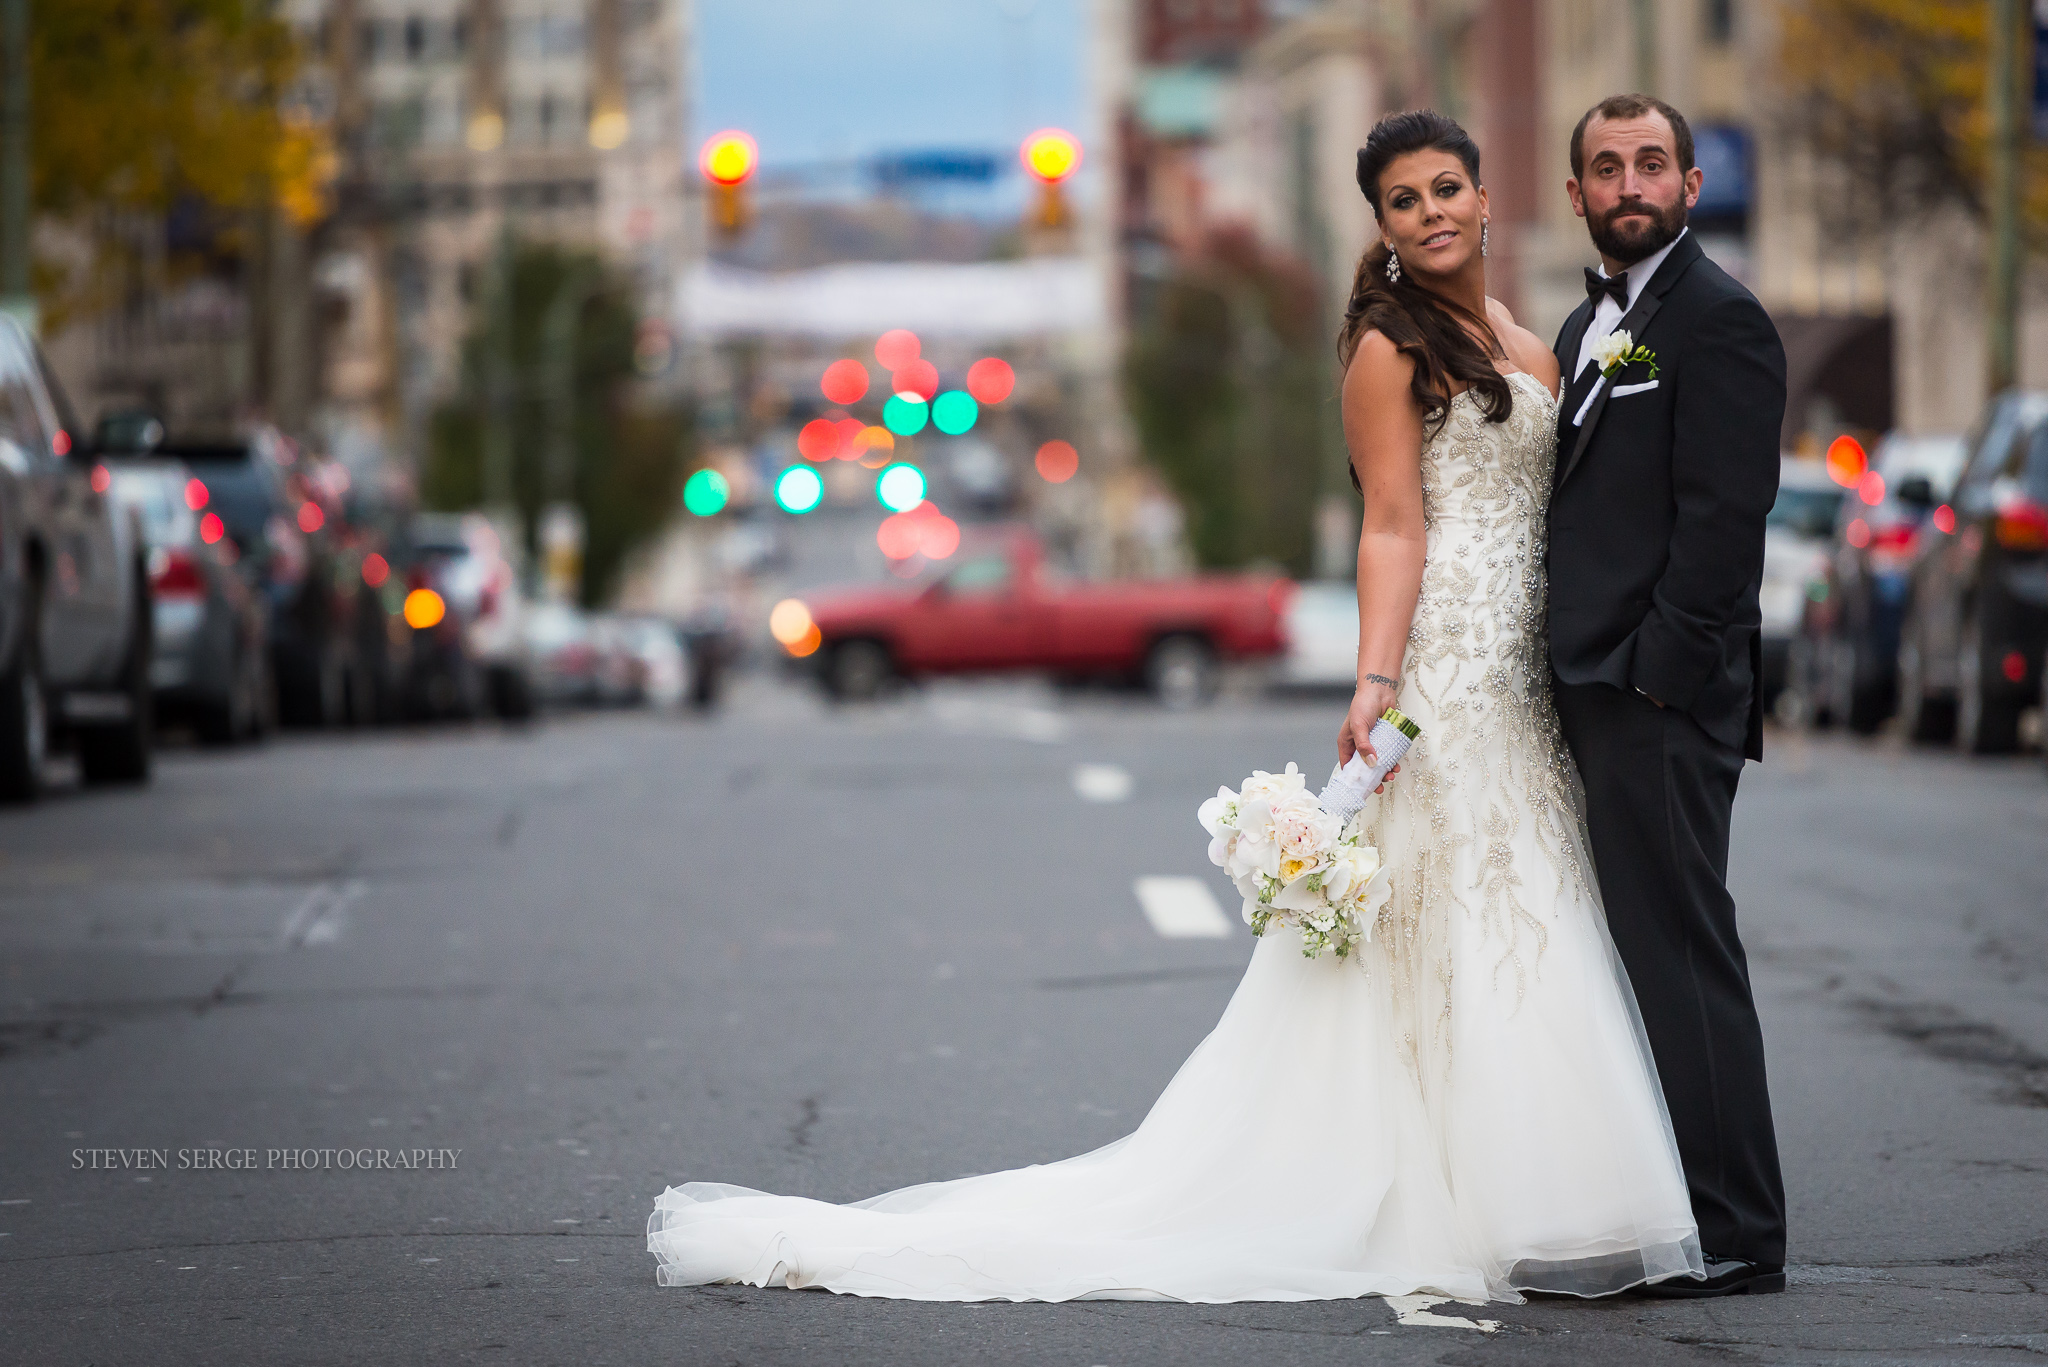 Denn-NEPA-Scranton-wedding-photographer-cultural-downtown-street-photography-dress-5.jpg